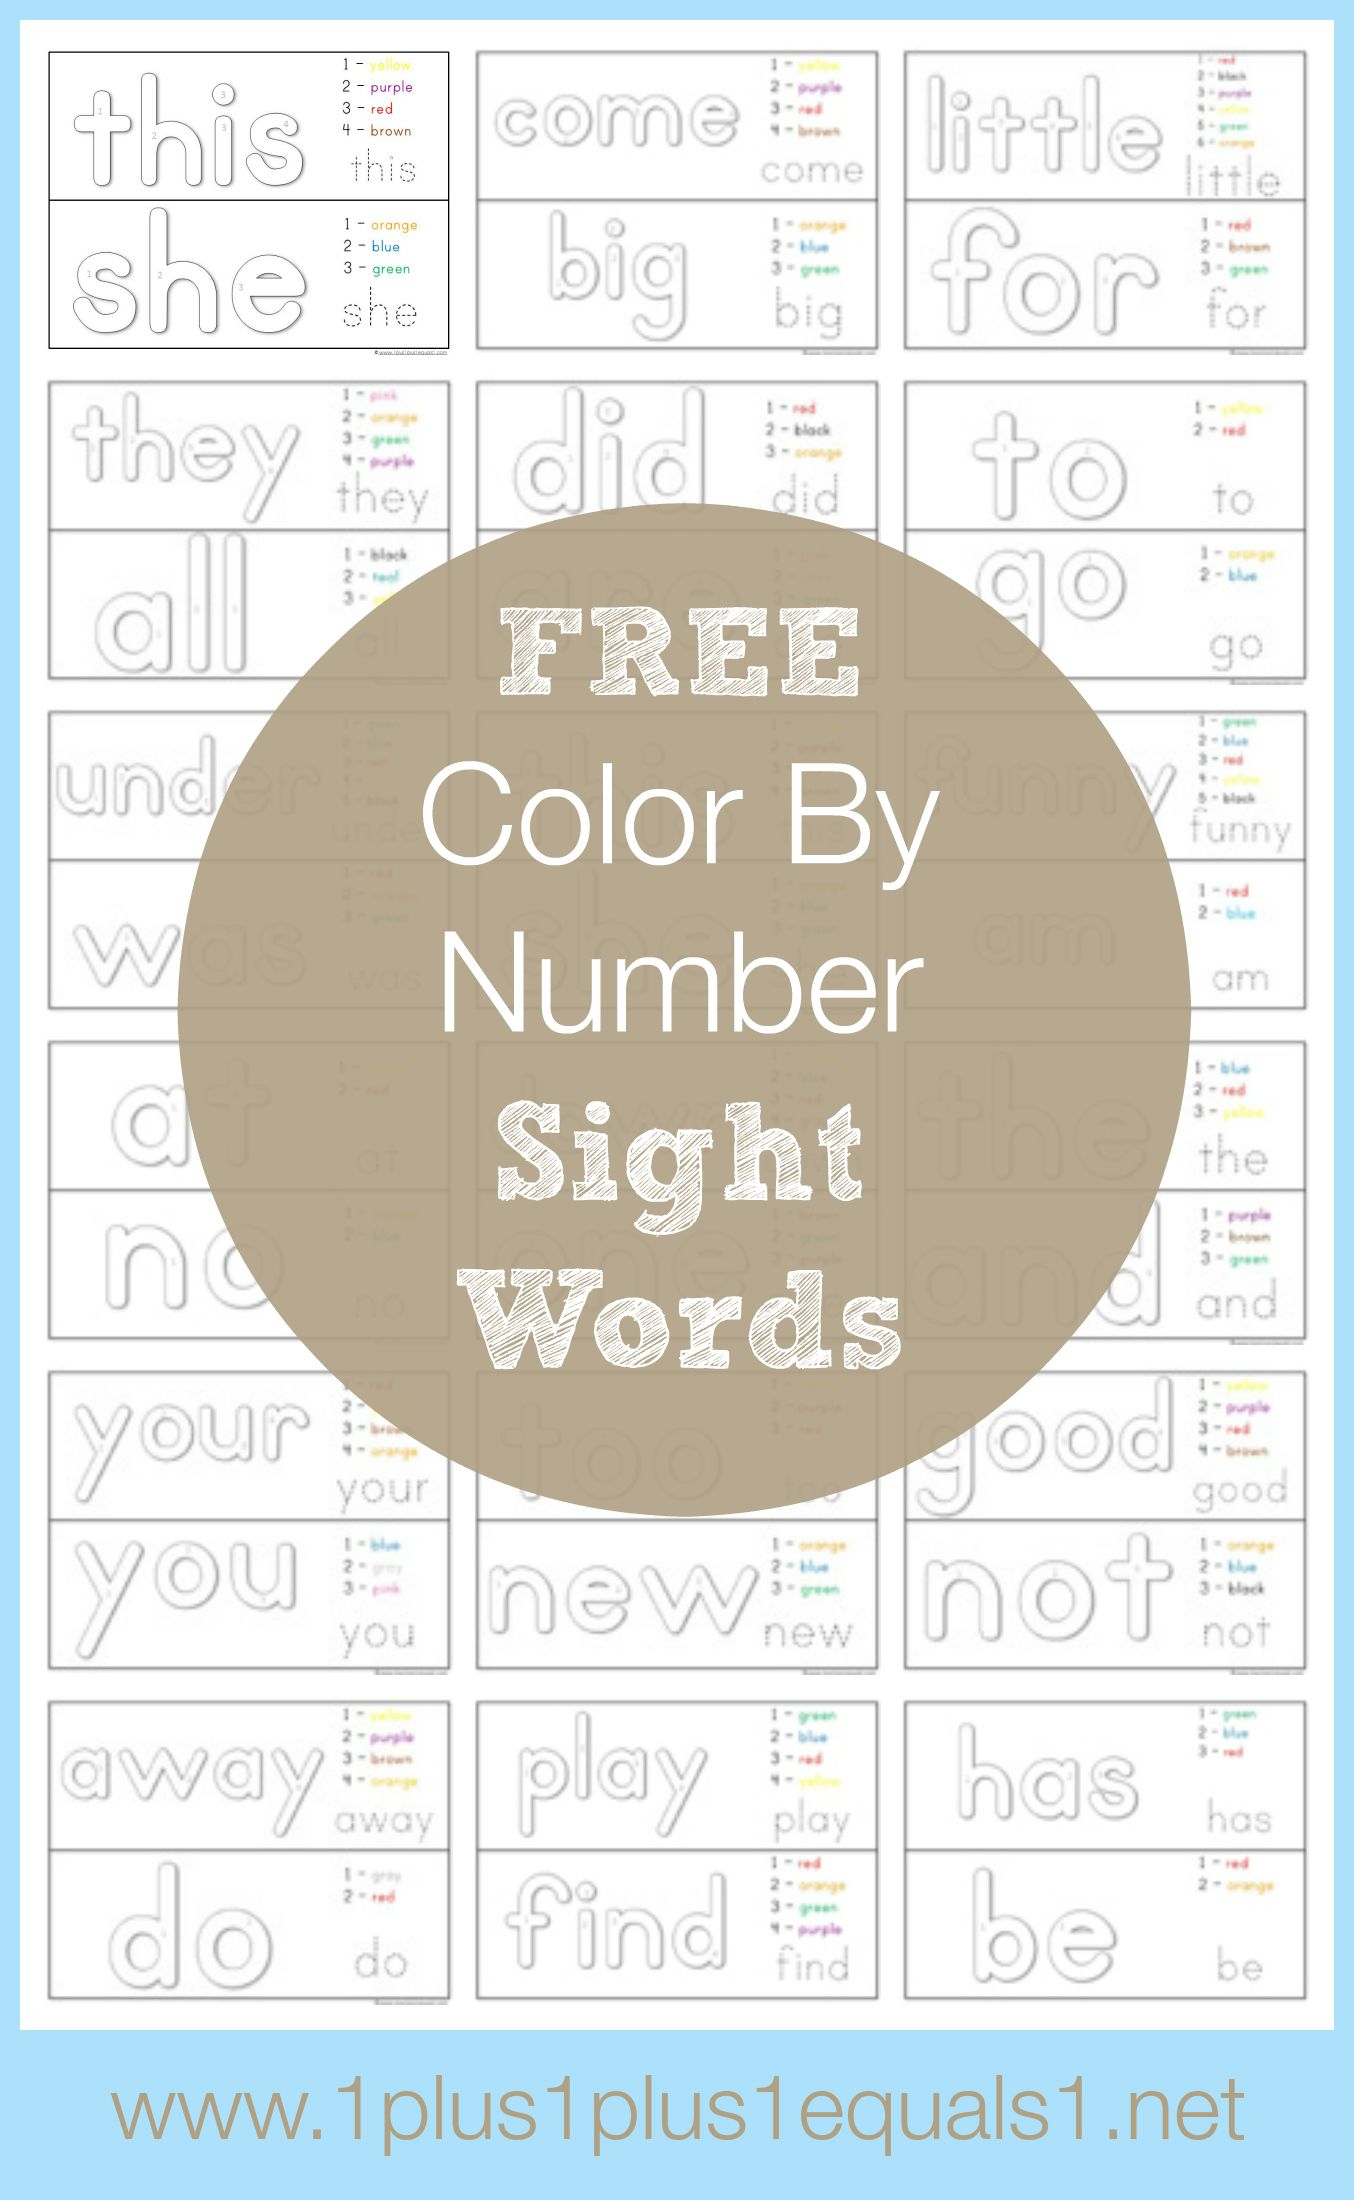 Color By Number Sight Words